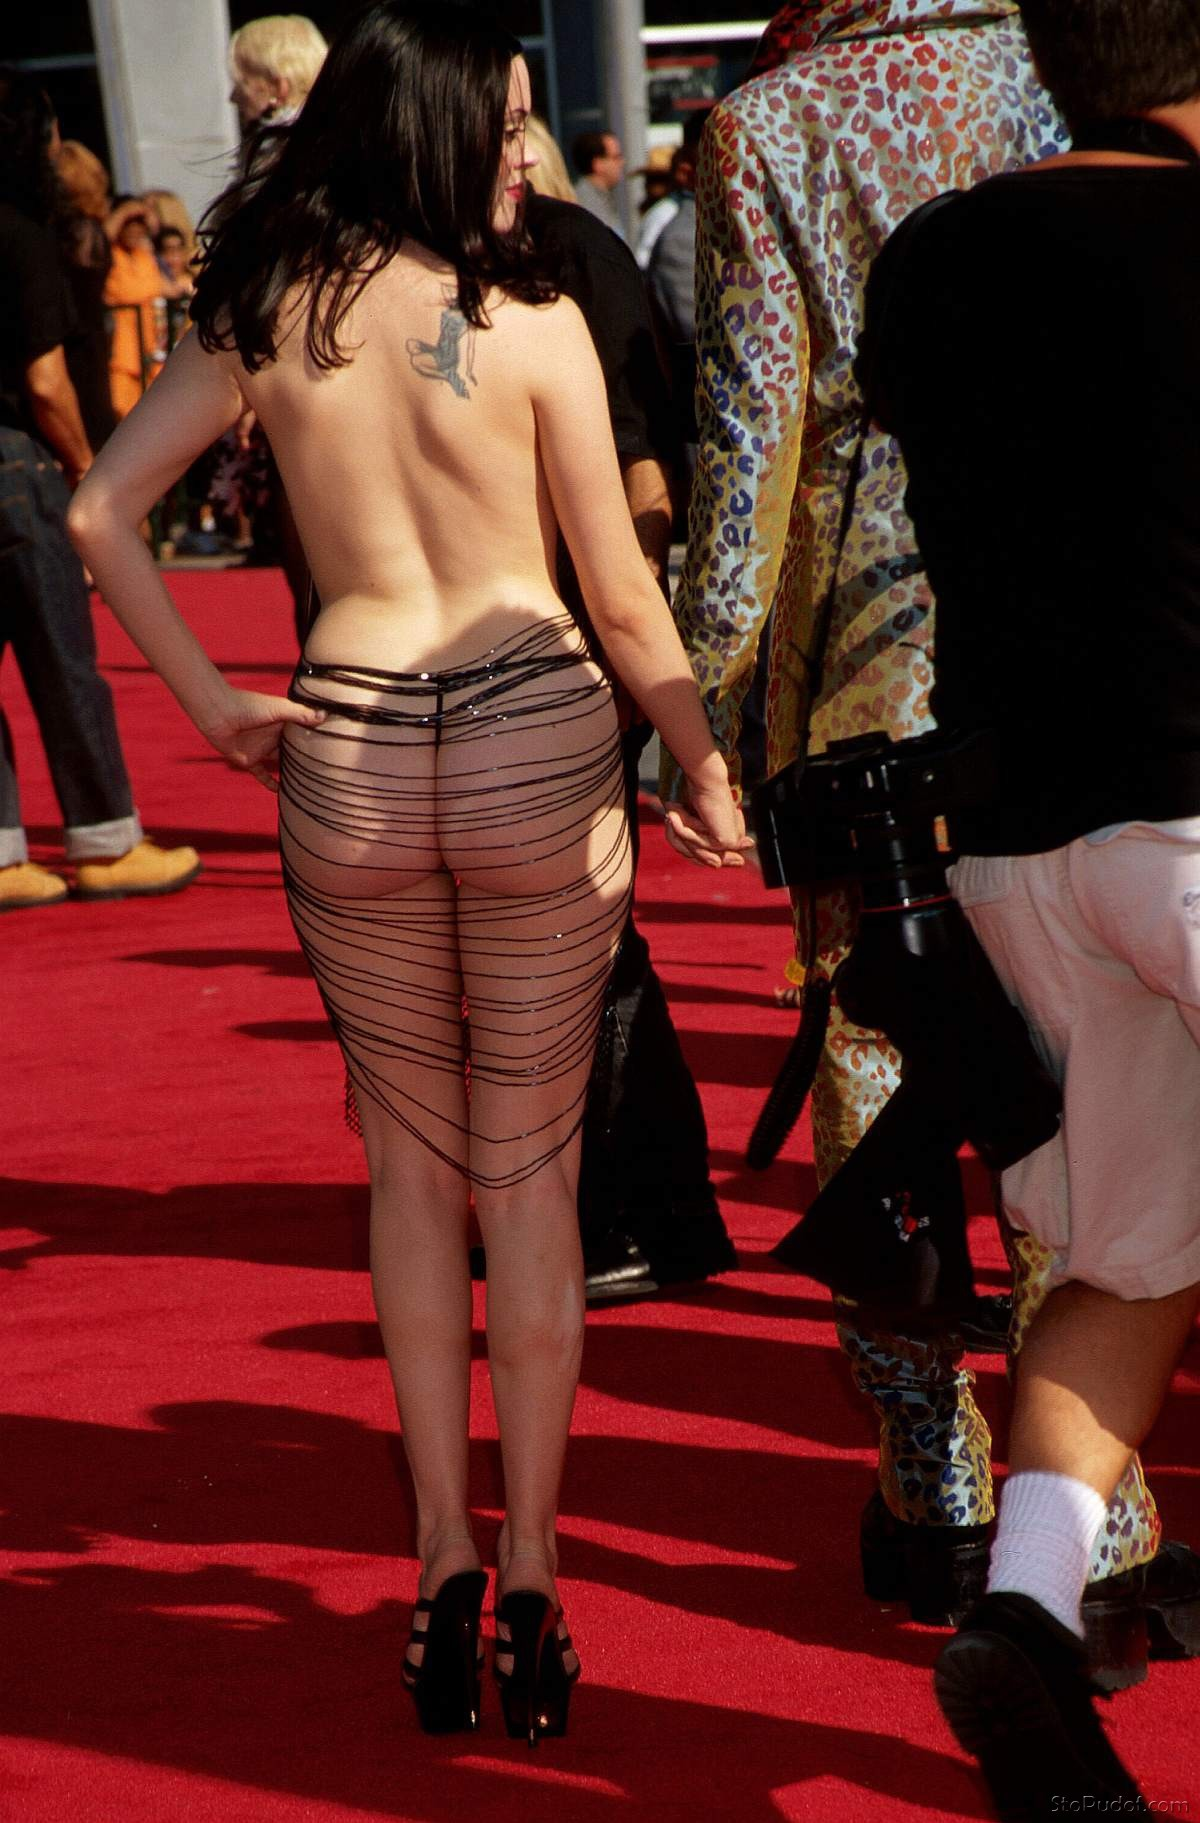 real Rose McGowan nude - UkPhotoSafari